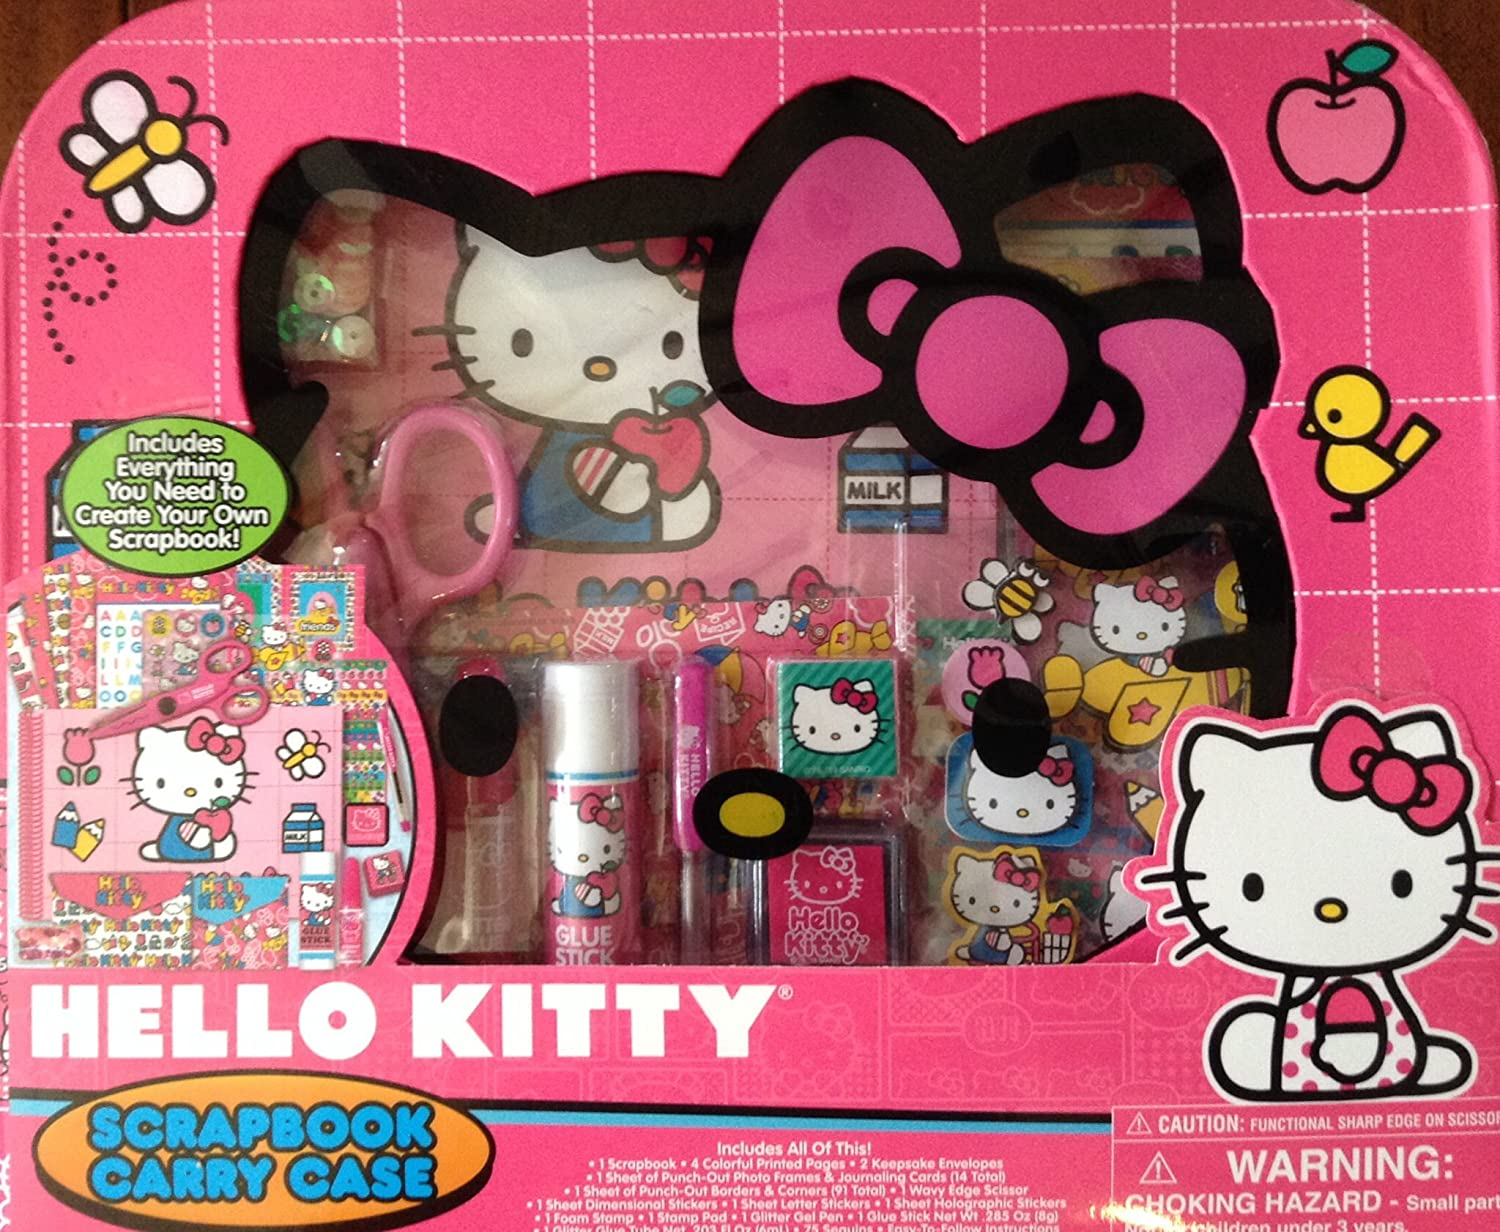 3ca209d34 Hello Kitty Scrapbook Carry Case and Supplies: Amazon.ca: Home & Kitchen